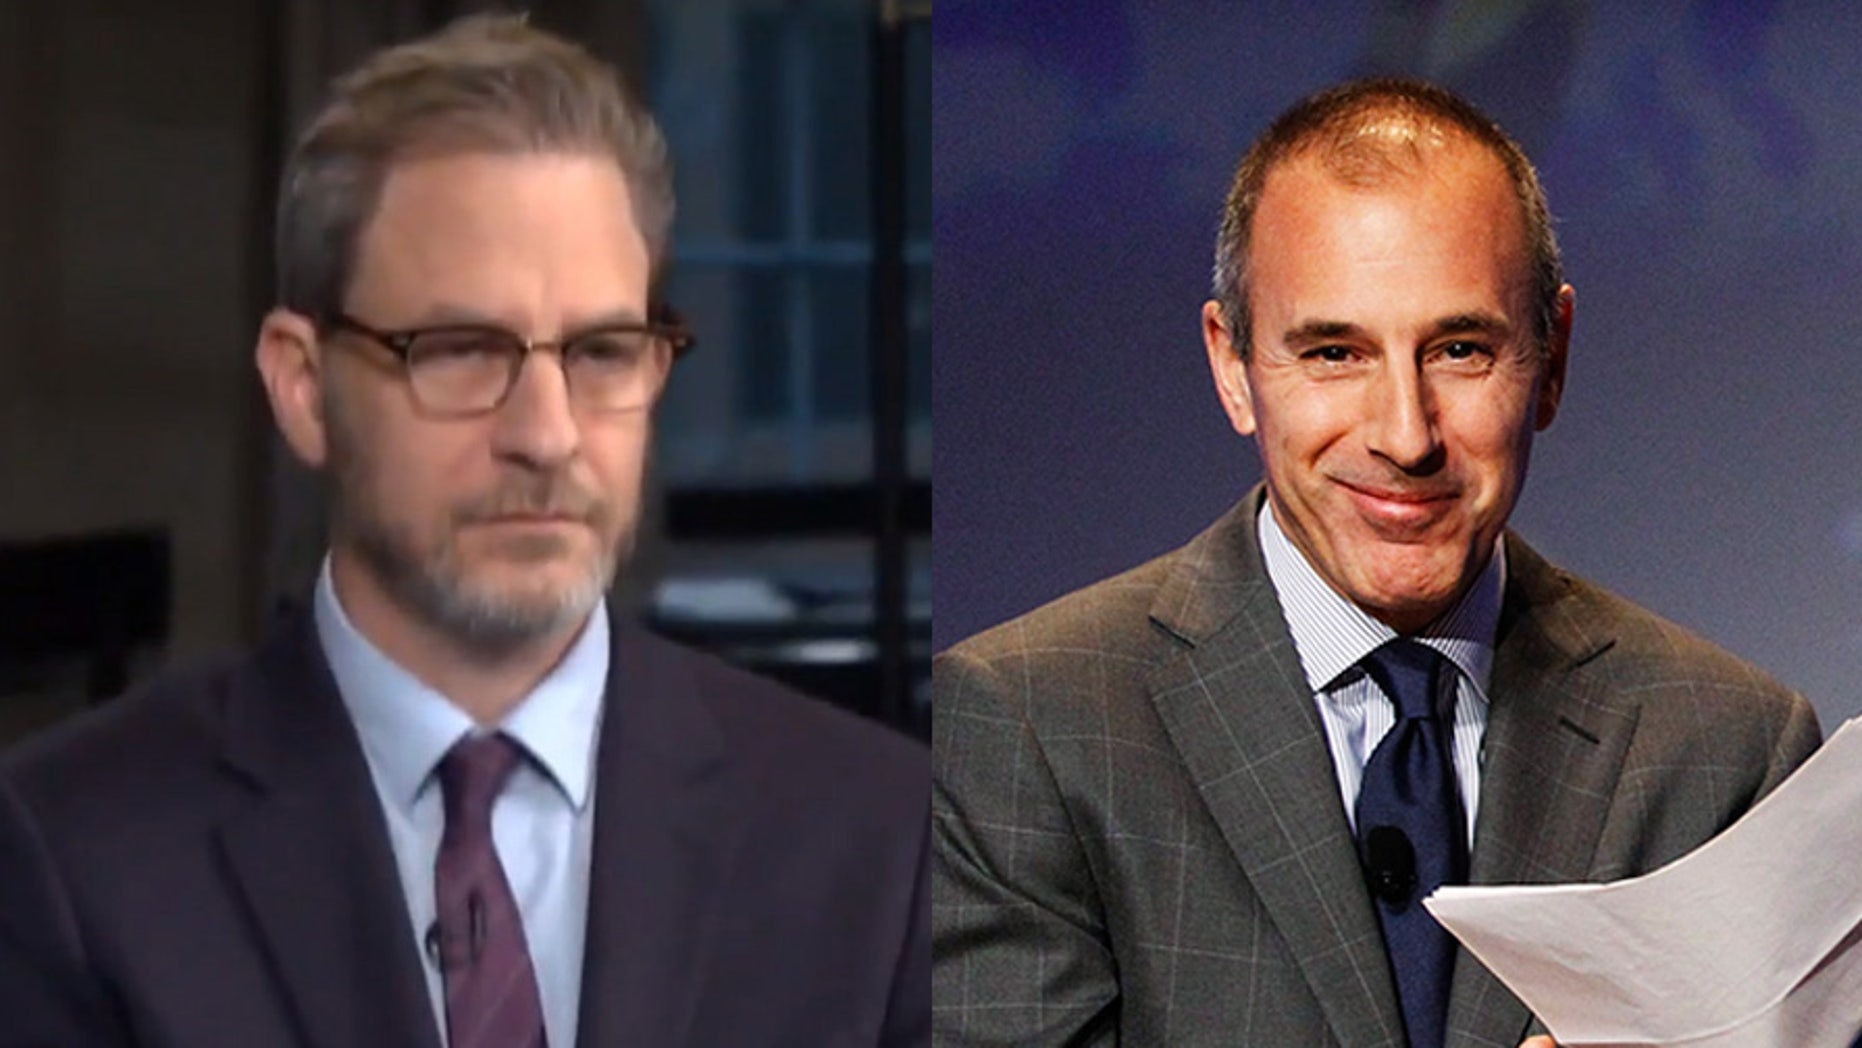 """Attorney Ari Wilkenfeld (left) said during an interview on """"Today"""" that his client is """"living in constant fear"""" after accusing Matt Lauer (right) of """"inappropriate sexual behavior."""""""